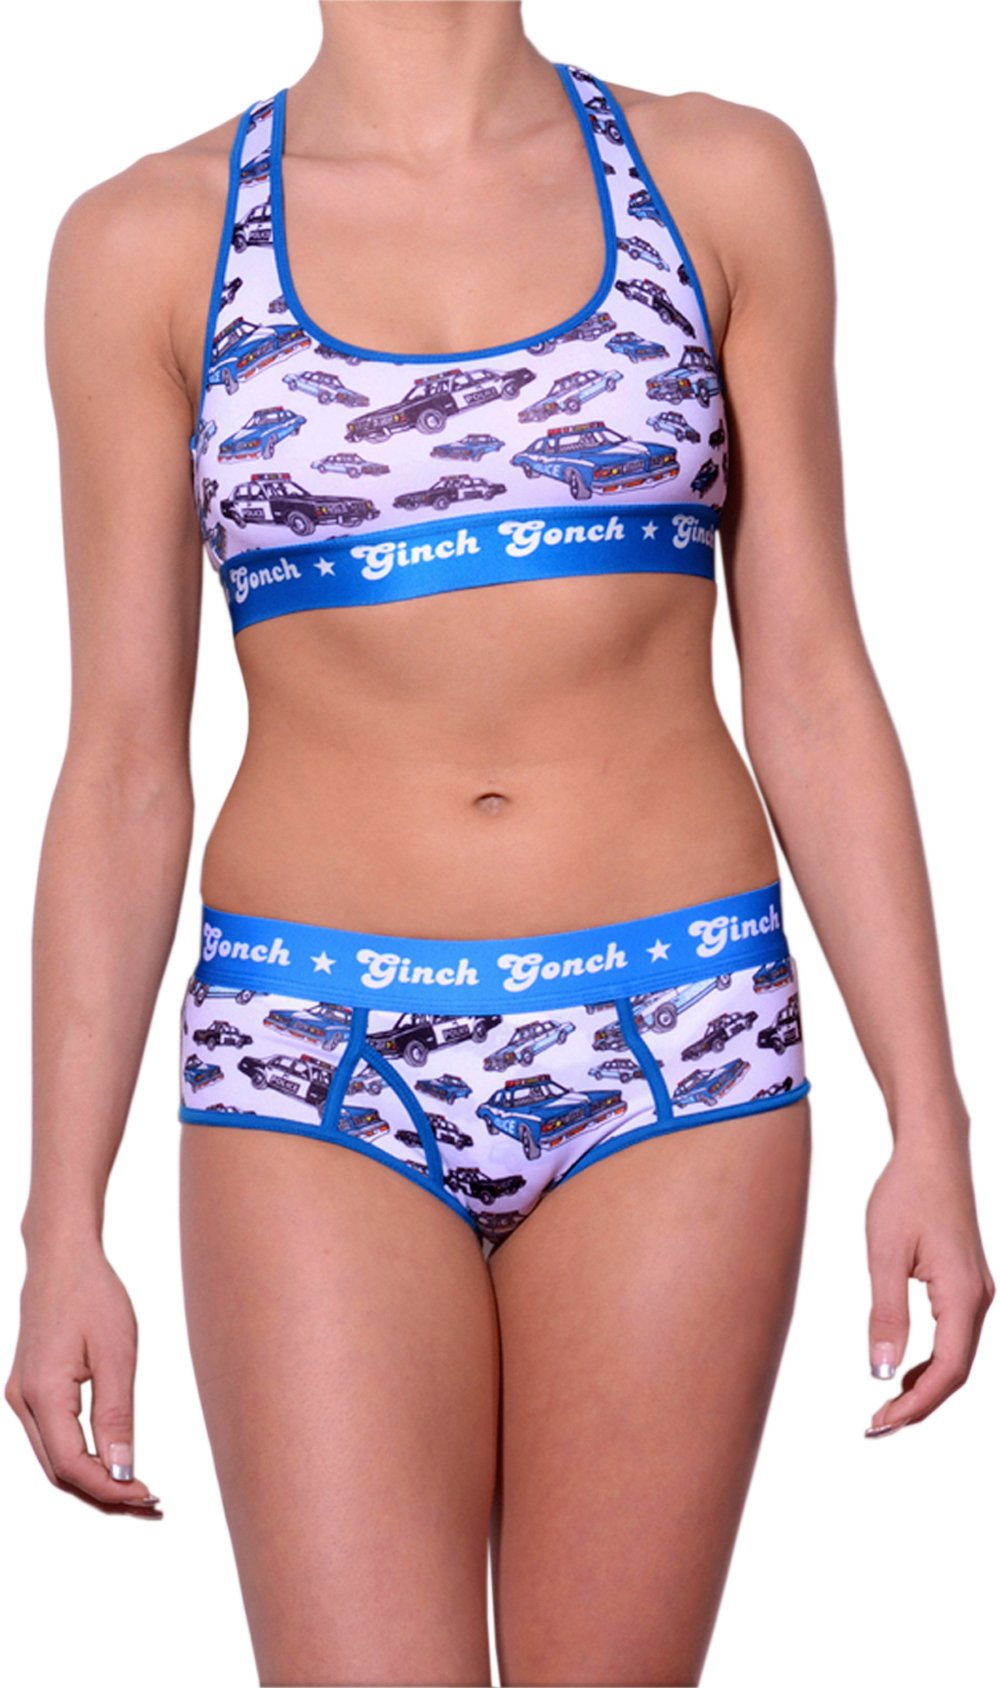 gg ginch gonch Busted boy cut brief y front - Women's Underwear with cop cars on white fabric with blue trim and printed waistband shown with matching sports bra front